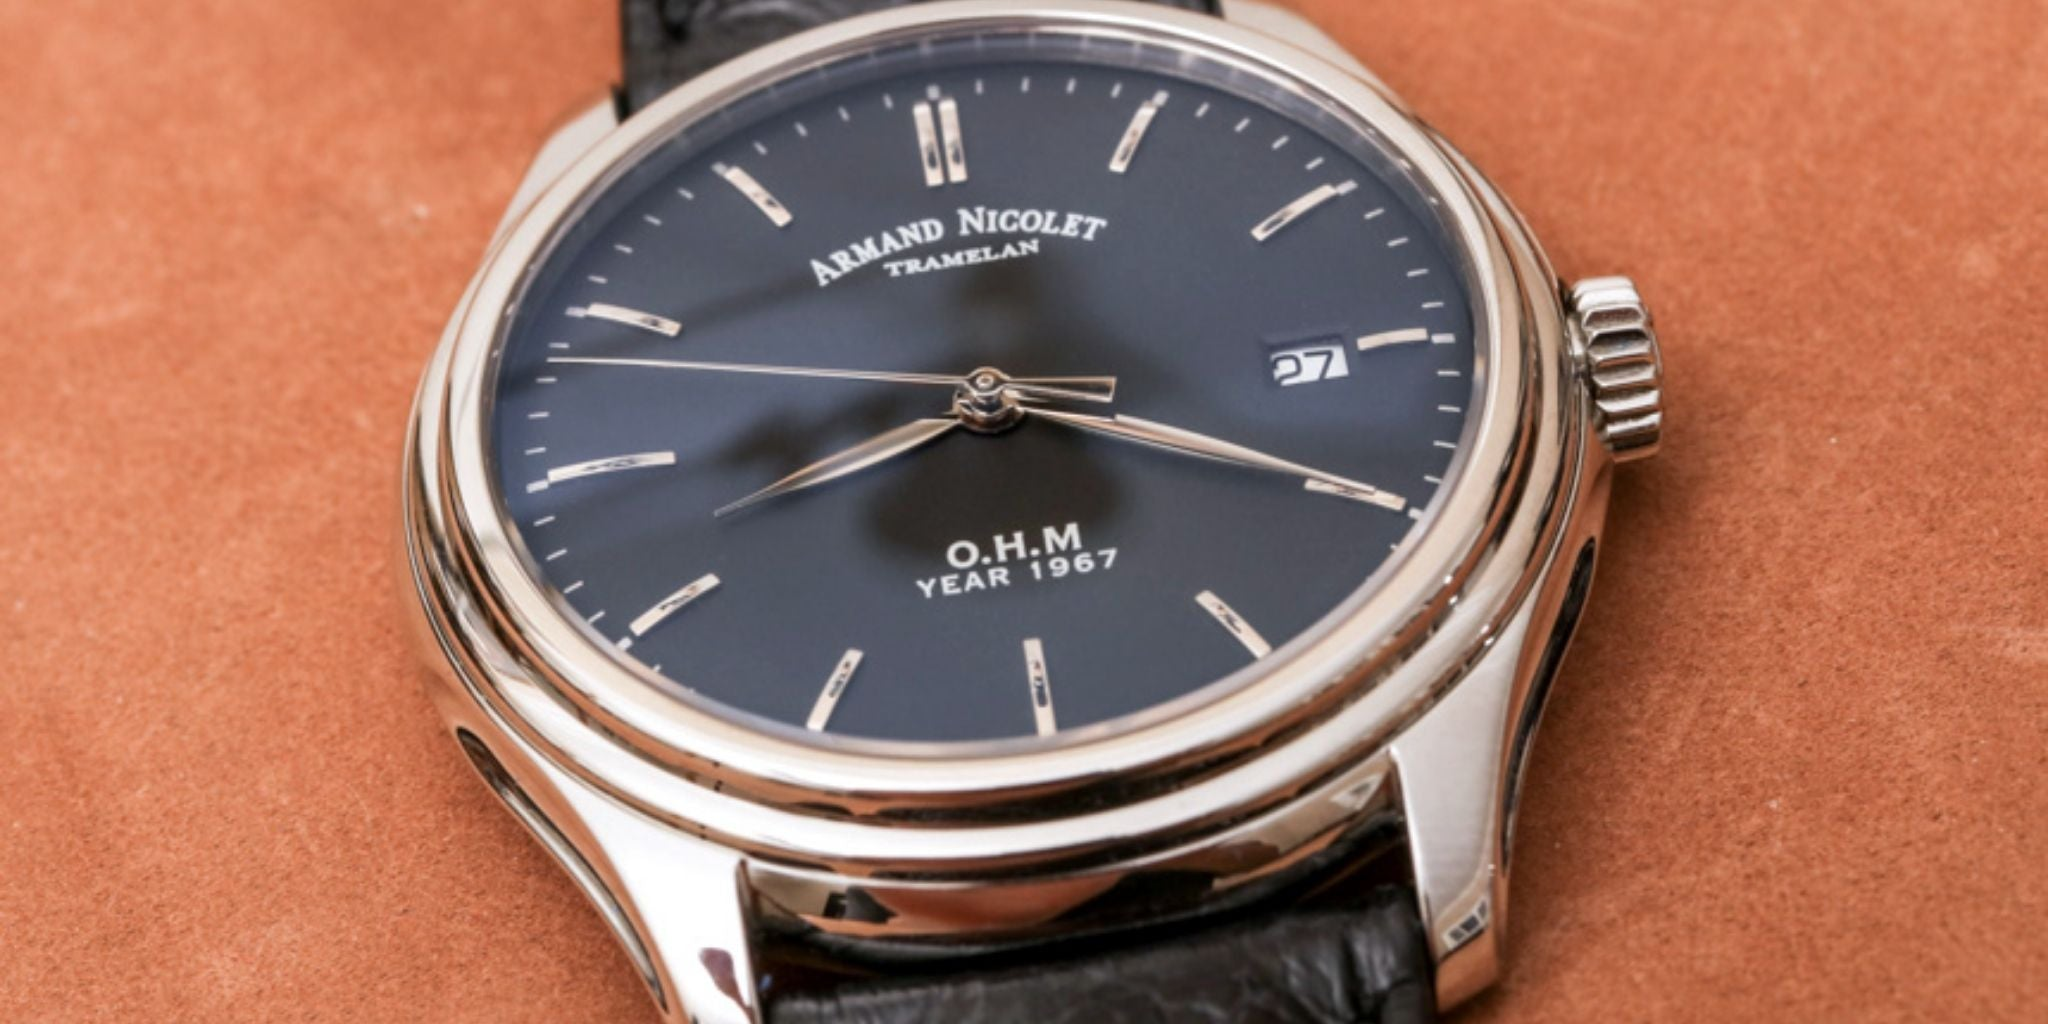 Armand Nicolet L15 O.H.M. Black Limited Edition